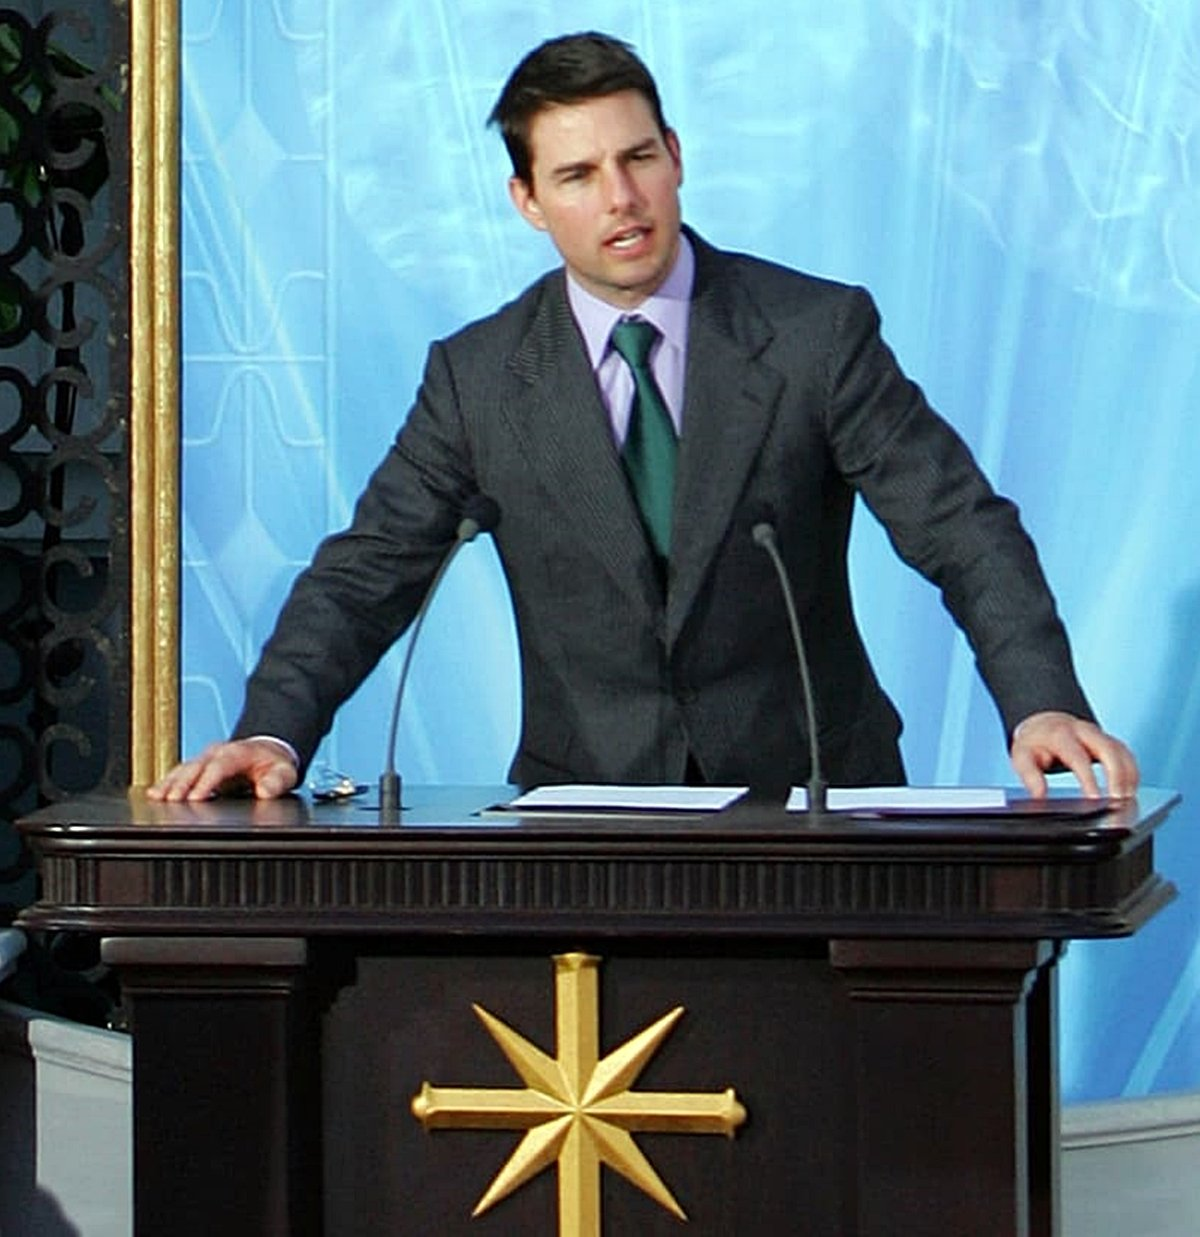 12 4 14 Interesting Facts About Tom Cruise